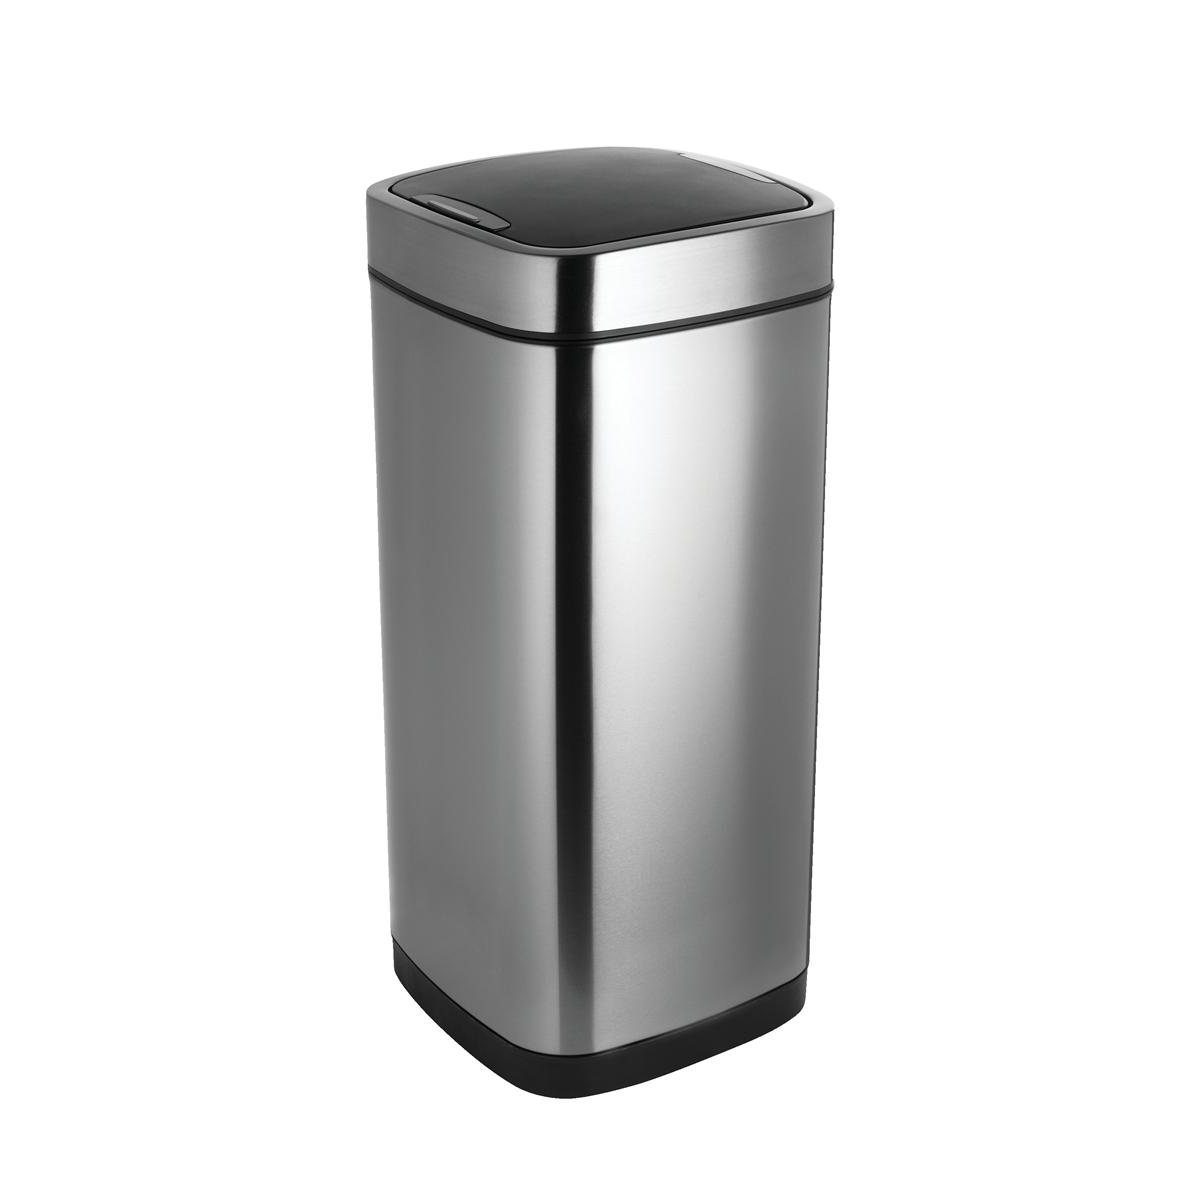 Addis 40 Litre Deluxe Stainless Steel Sqaure Press Top Bin (Pack of 1) 513914